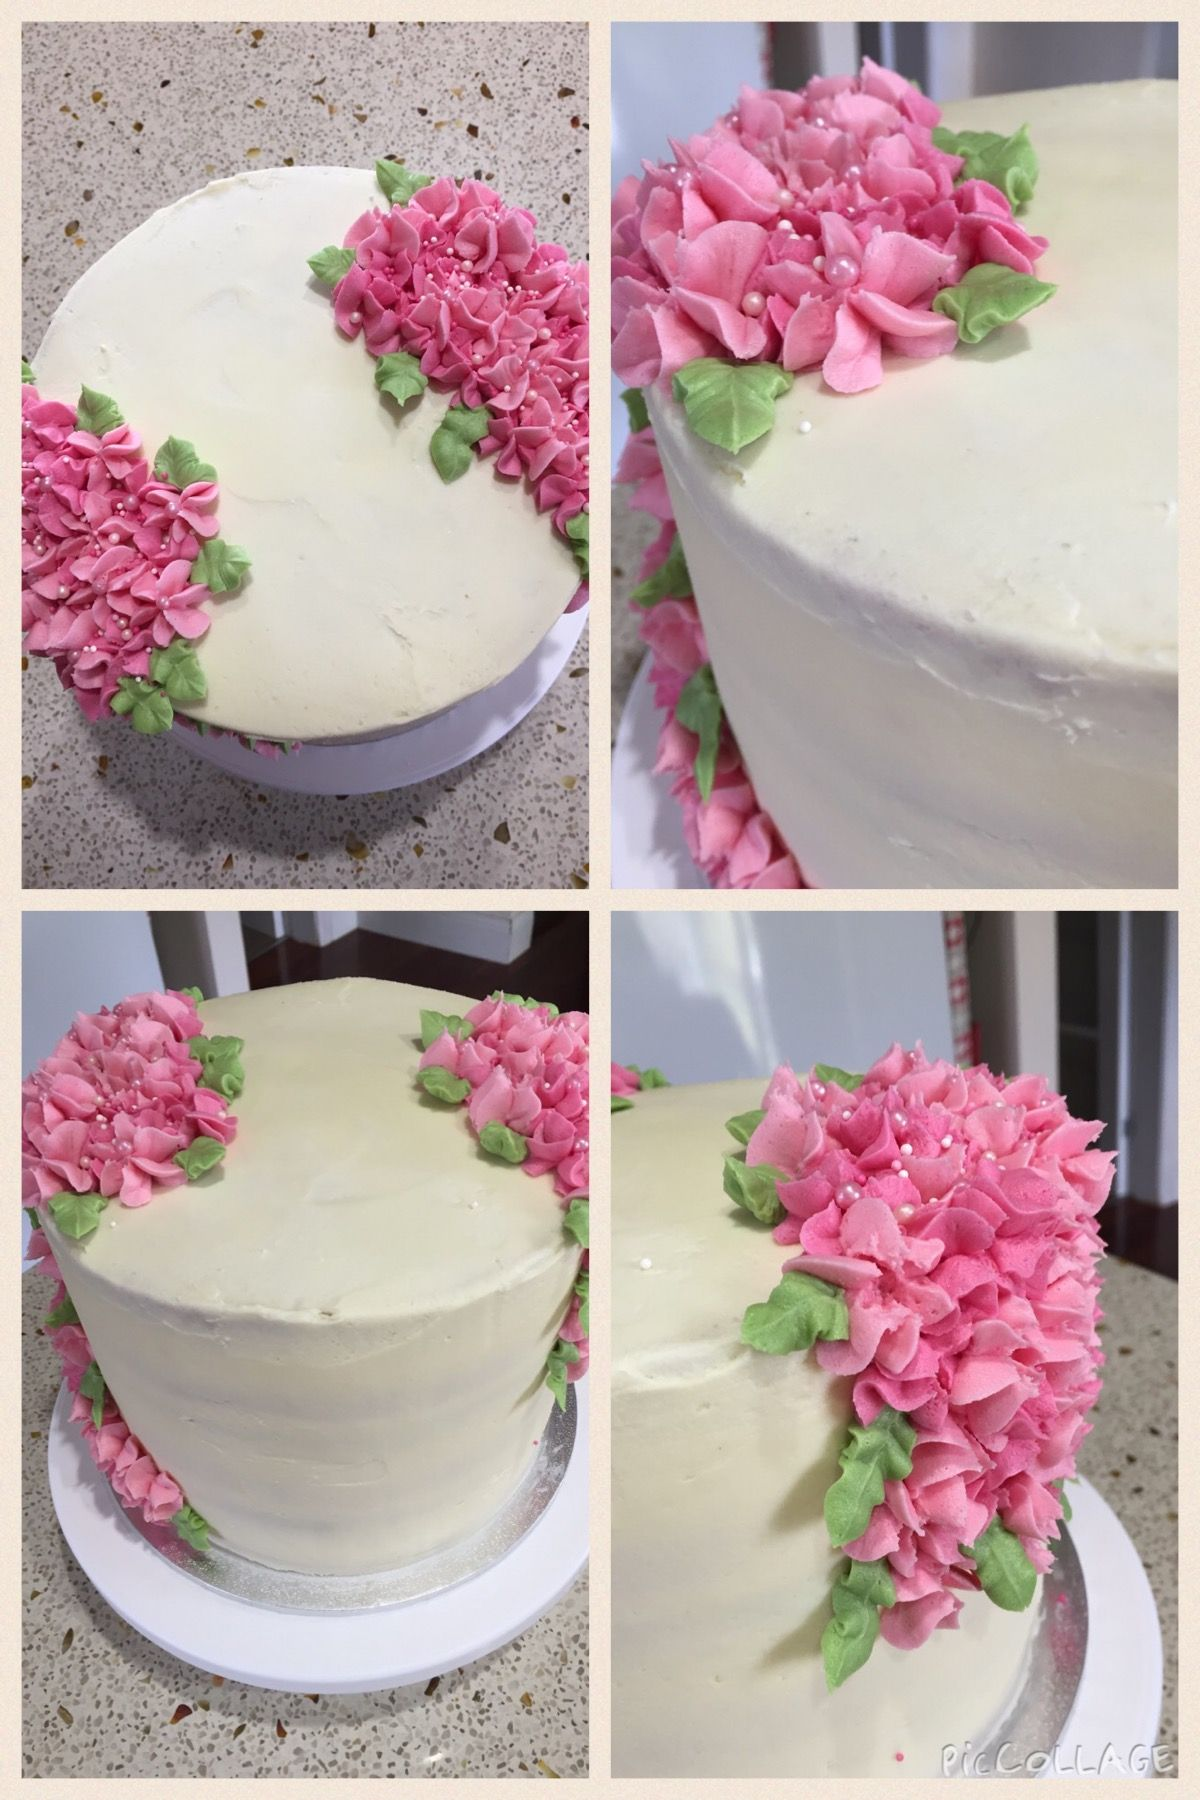 Pin by Michelle Greer on Always Room For Cake Cake